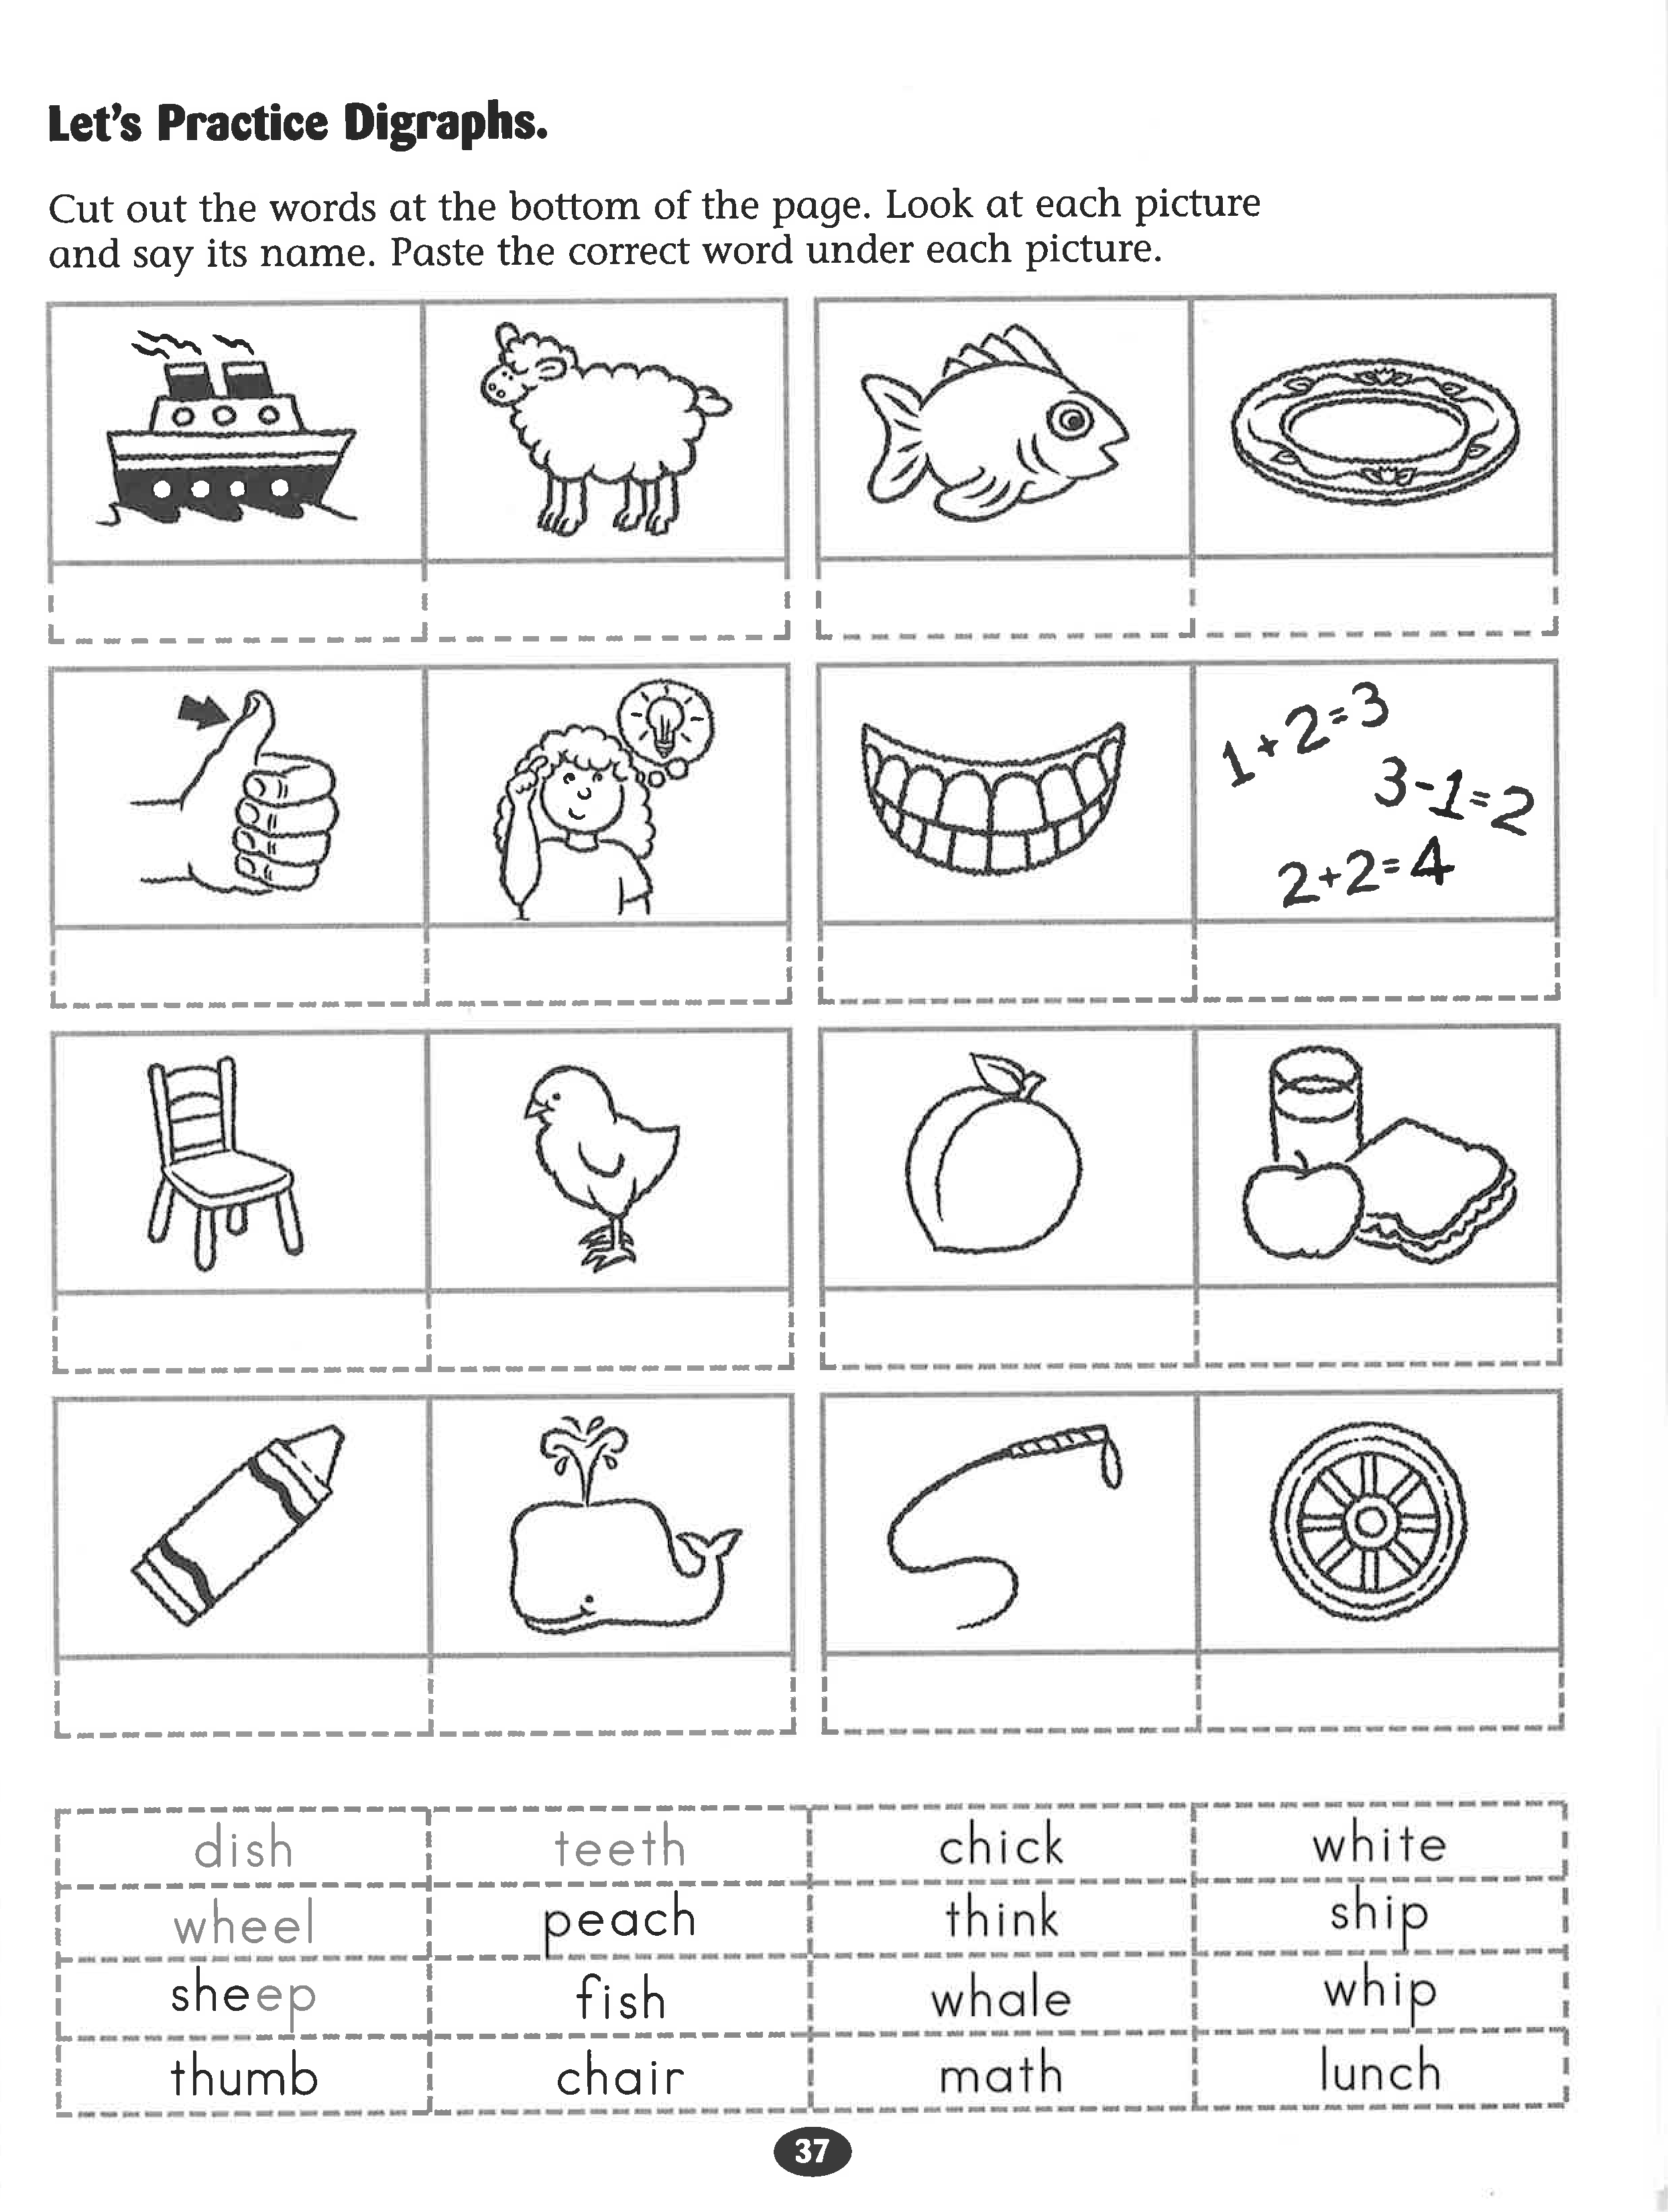 Worksheets Digraph Worksheets lets practice digraphs worksheet rockin reading tips and worksheet